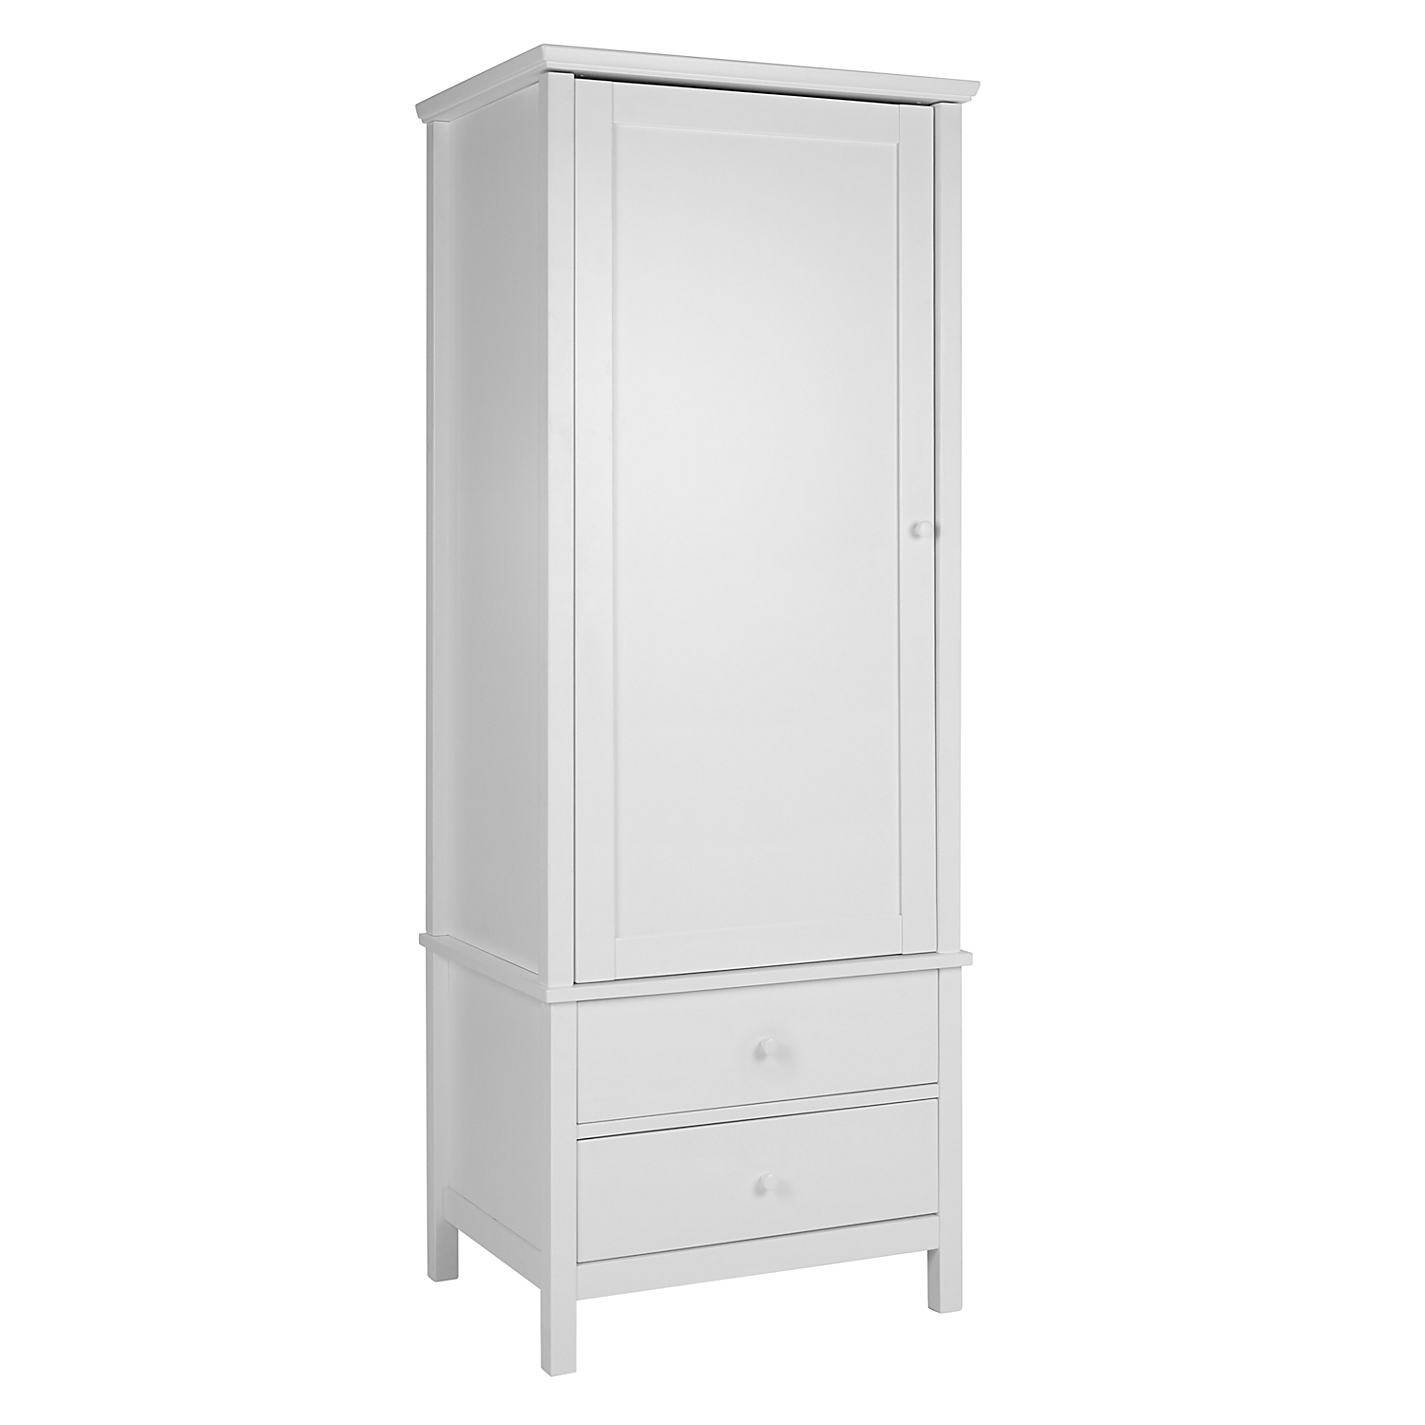 Tips To Choose Perfect White Wardrobes For Your Room – Designinyou with White Single Door Wardrobes (Image 10 of 15)